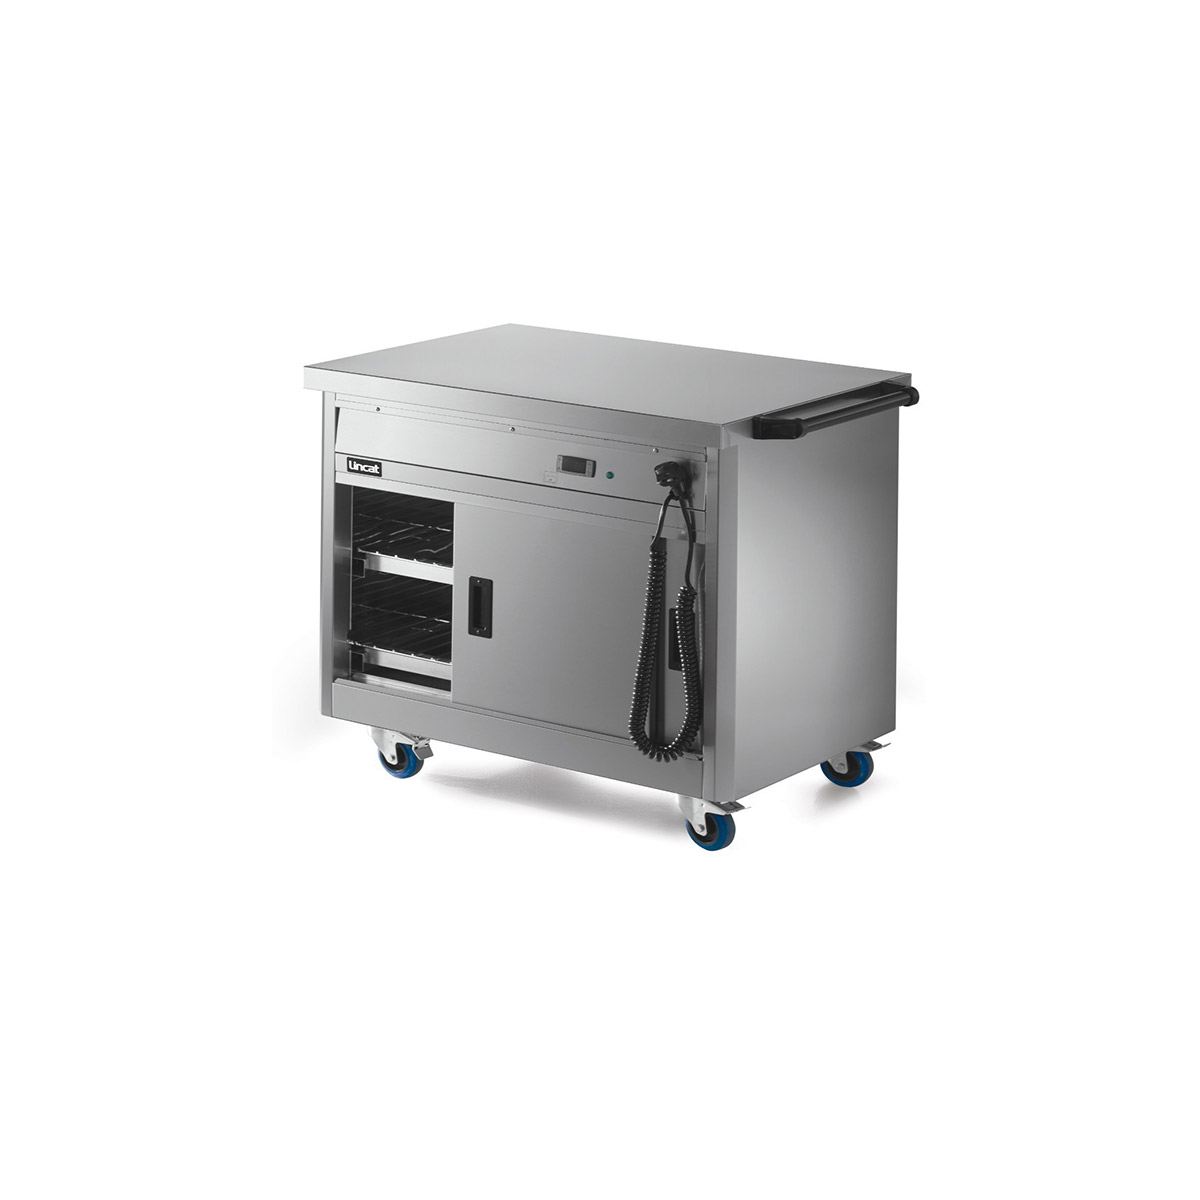 P6P2 - Lincat Panther 670 Series Free-standing Hot Cupboard - Plain Top - W 980 mm - 1.5 kW